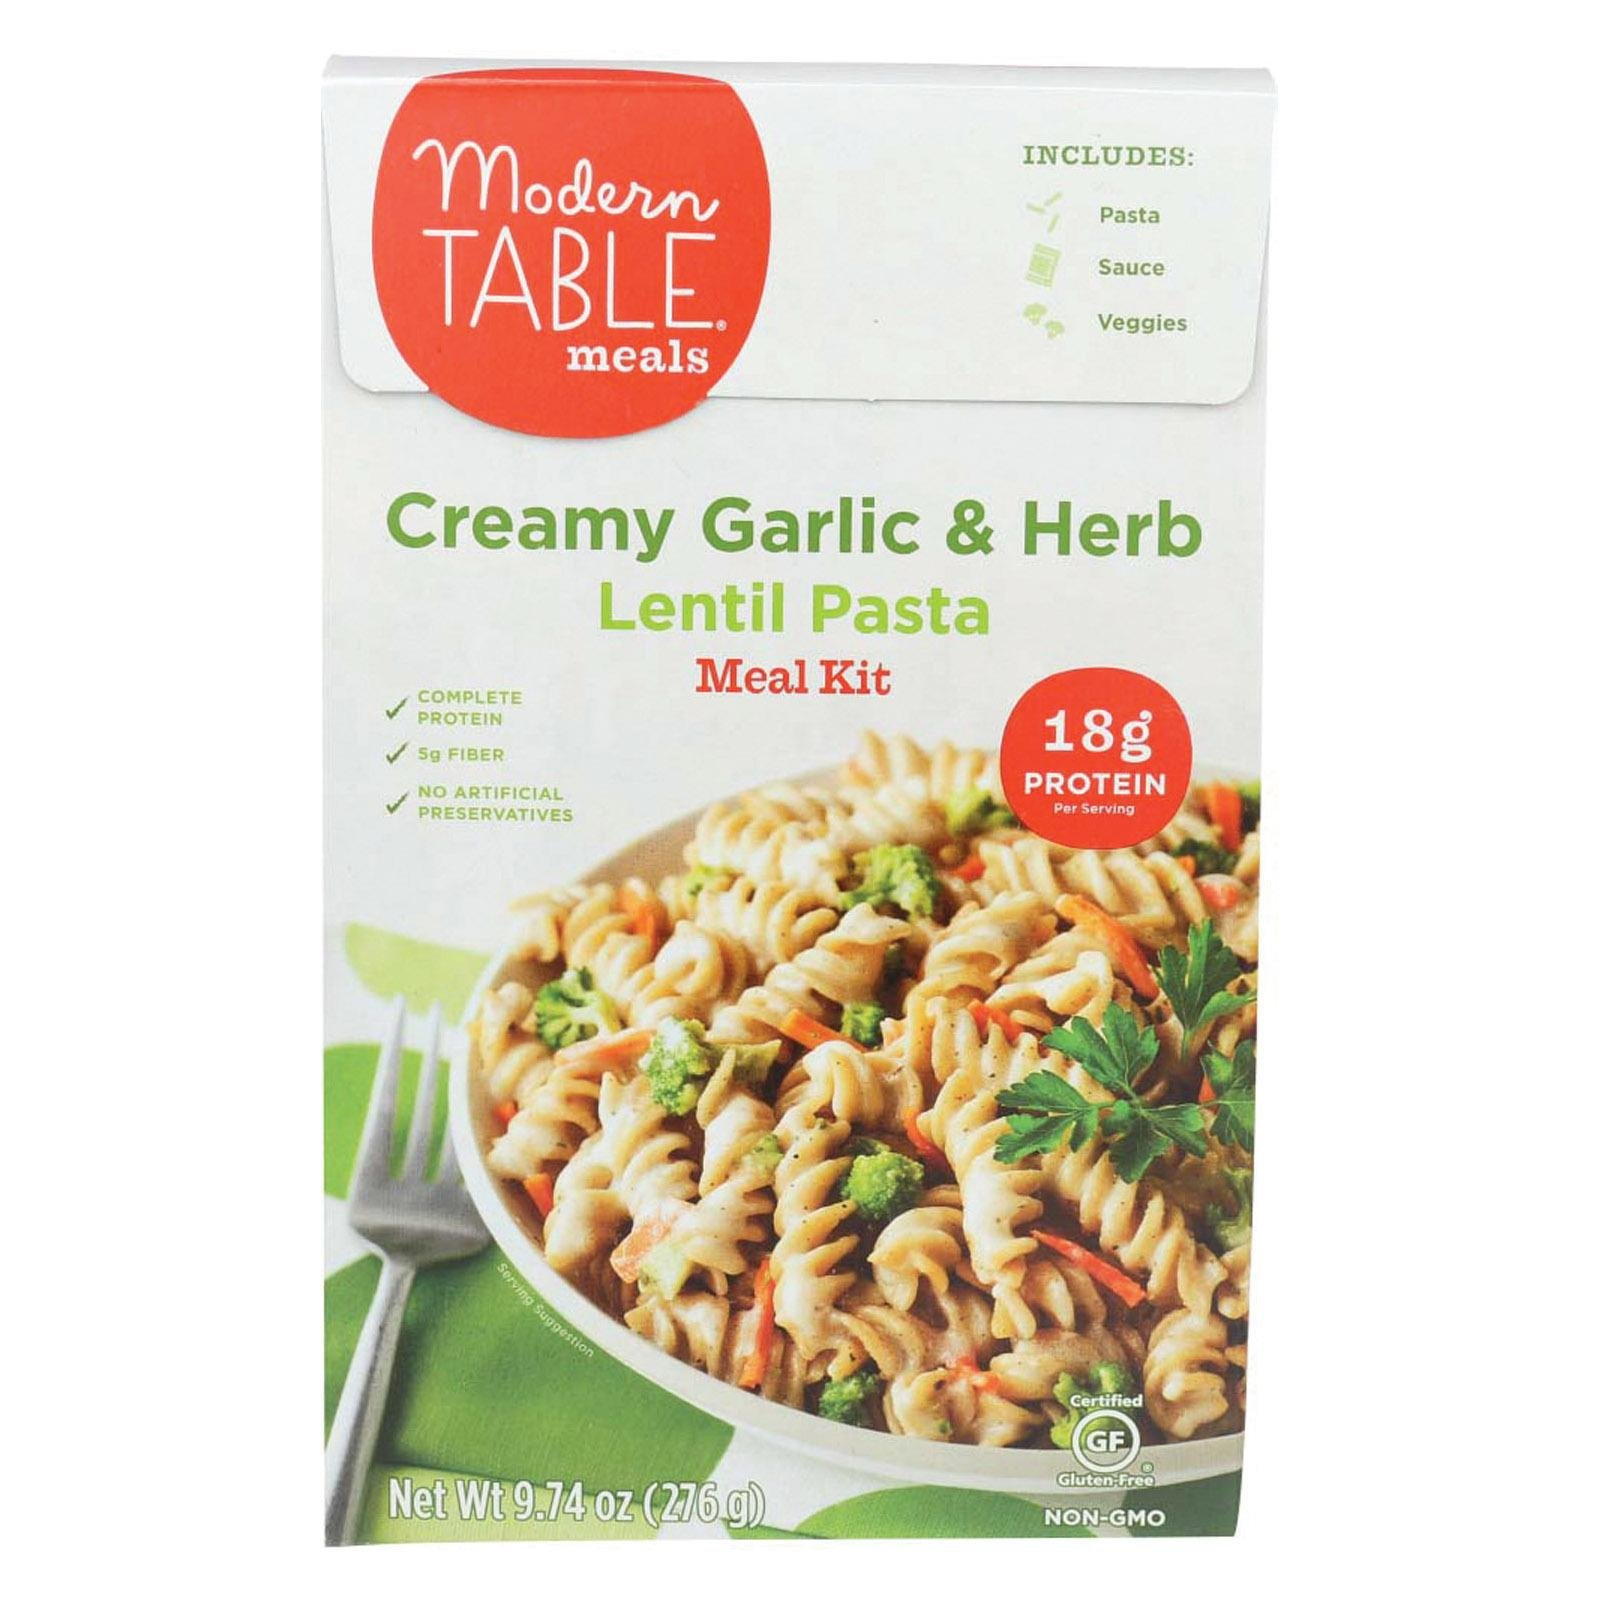 MODERN TABLE, LENTIL PASTA, MEAL KIT, CREAMY GARLIC - 9.7 Ounce, Pack of 6